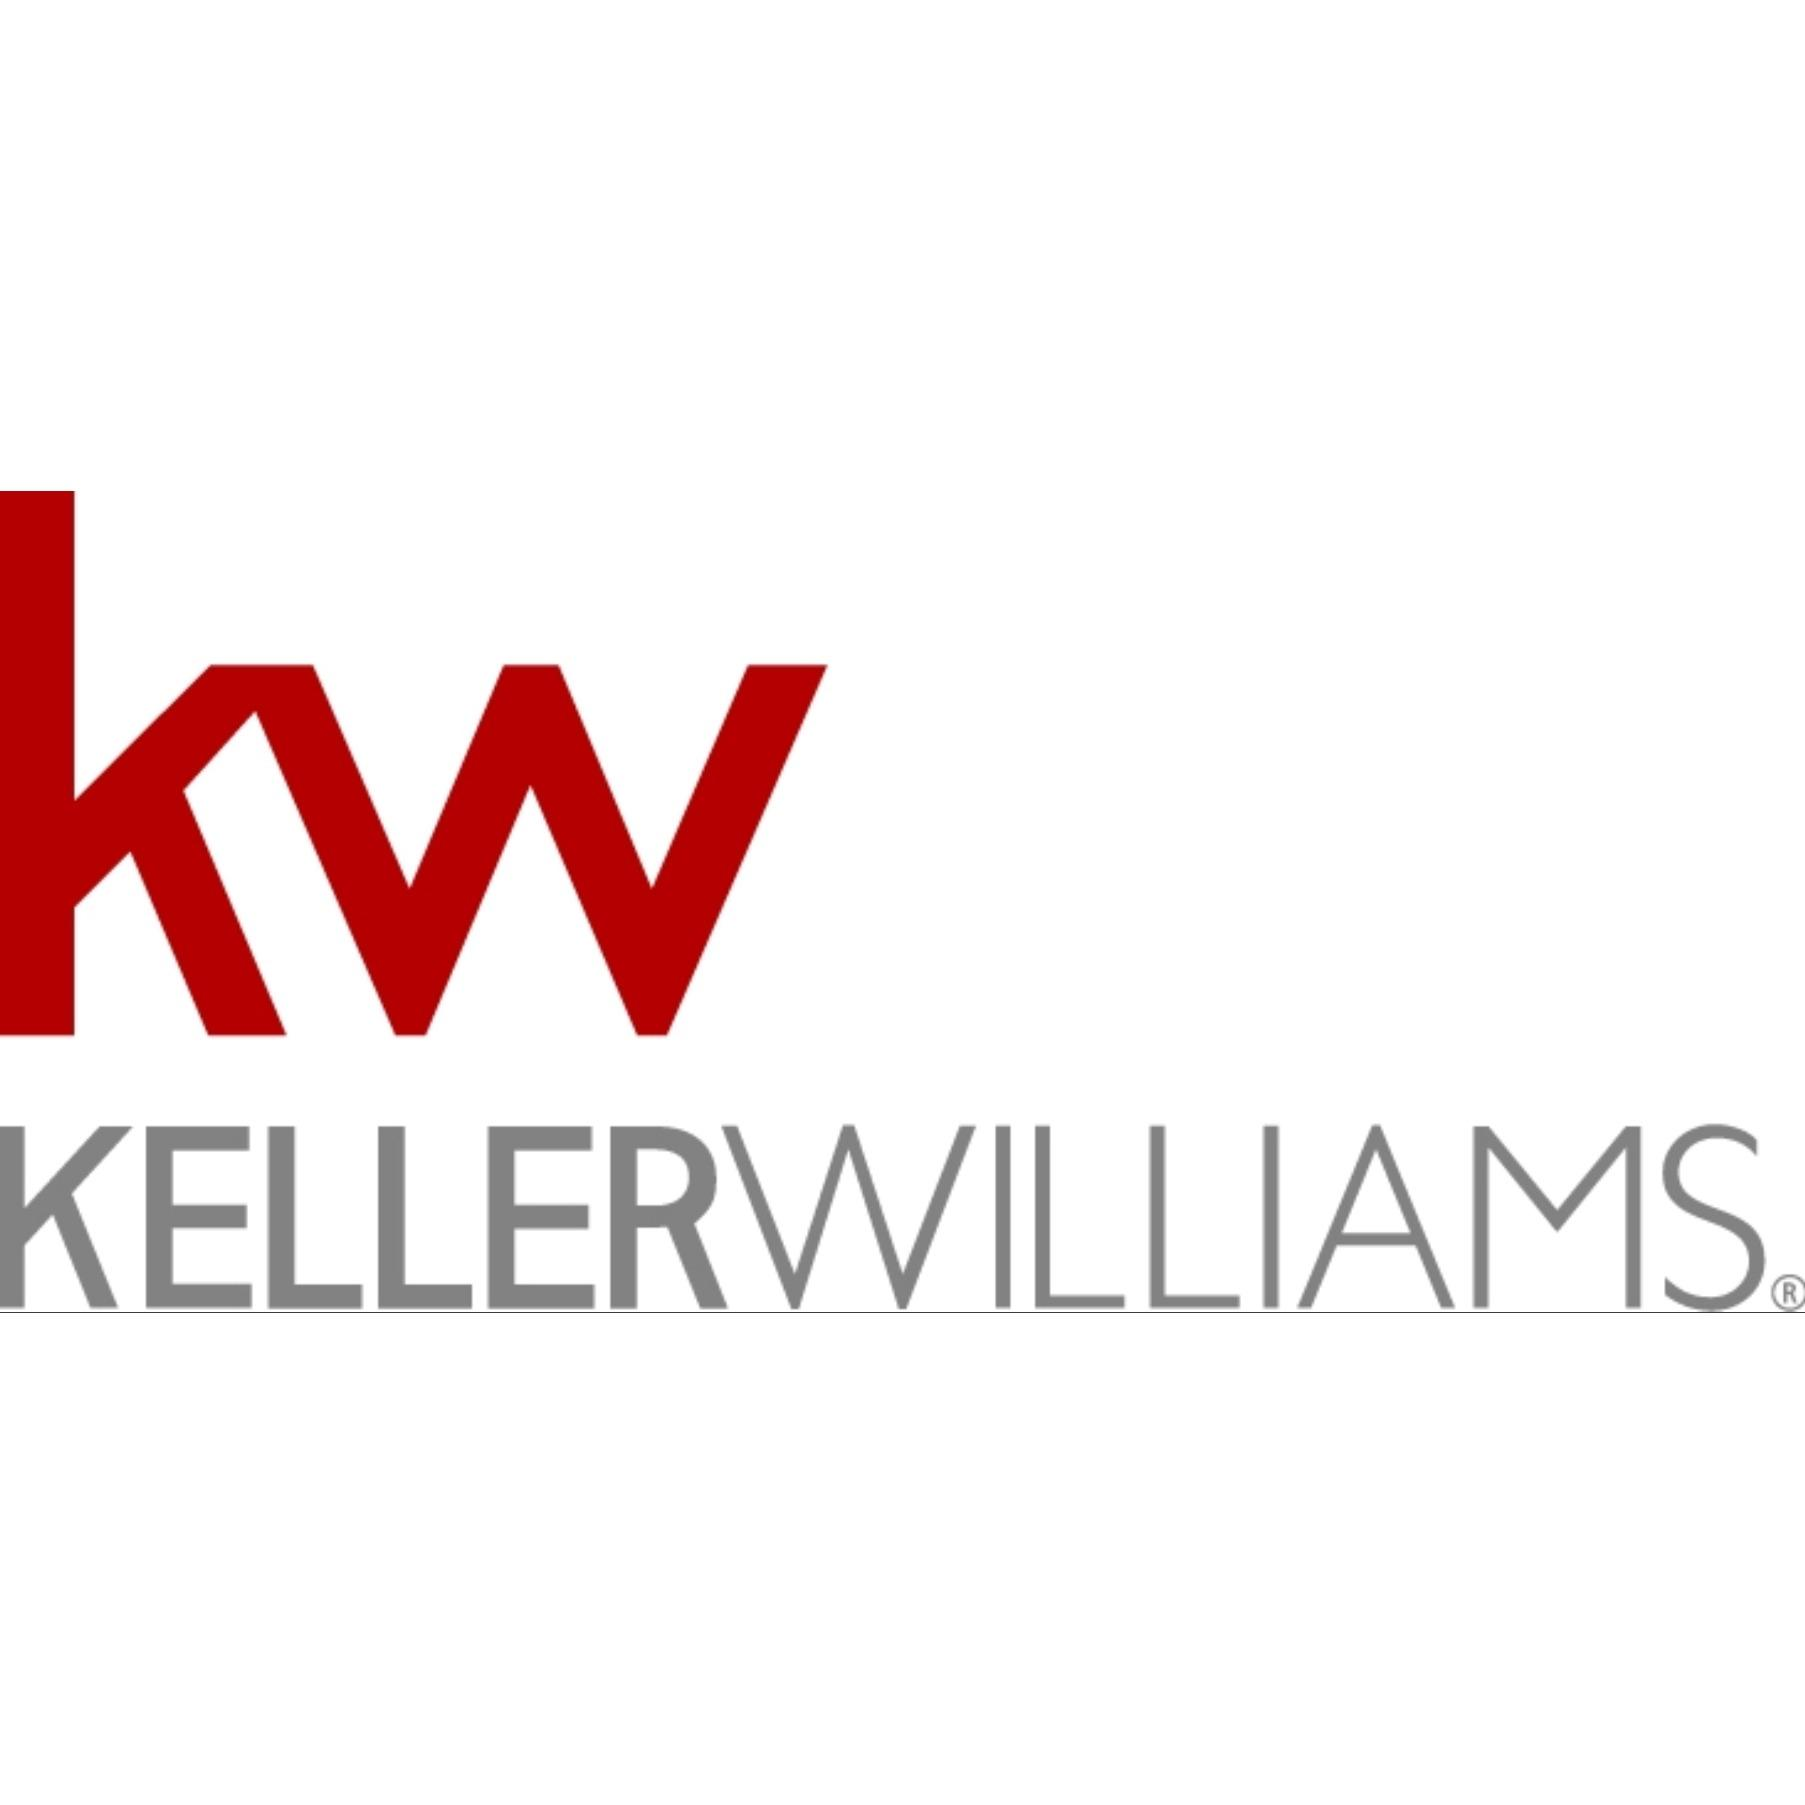 Hardik Soni Keller Williams - Morristown, NJ 07960 - (973)283-5422 | ShowMeLocal.com